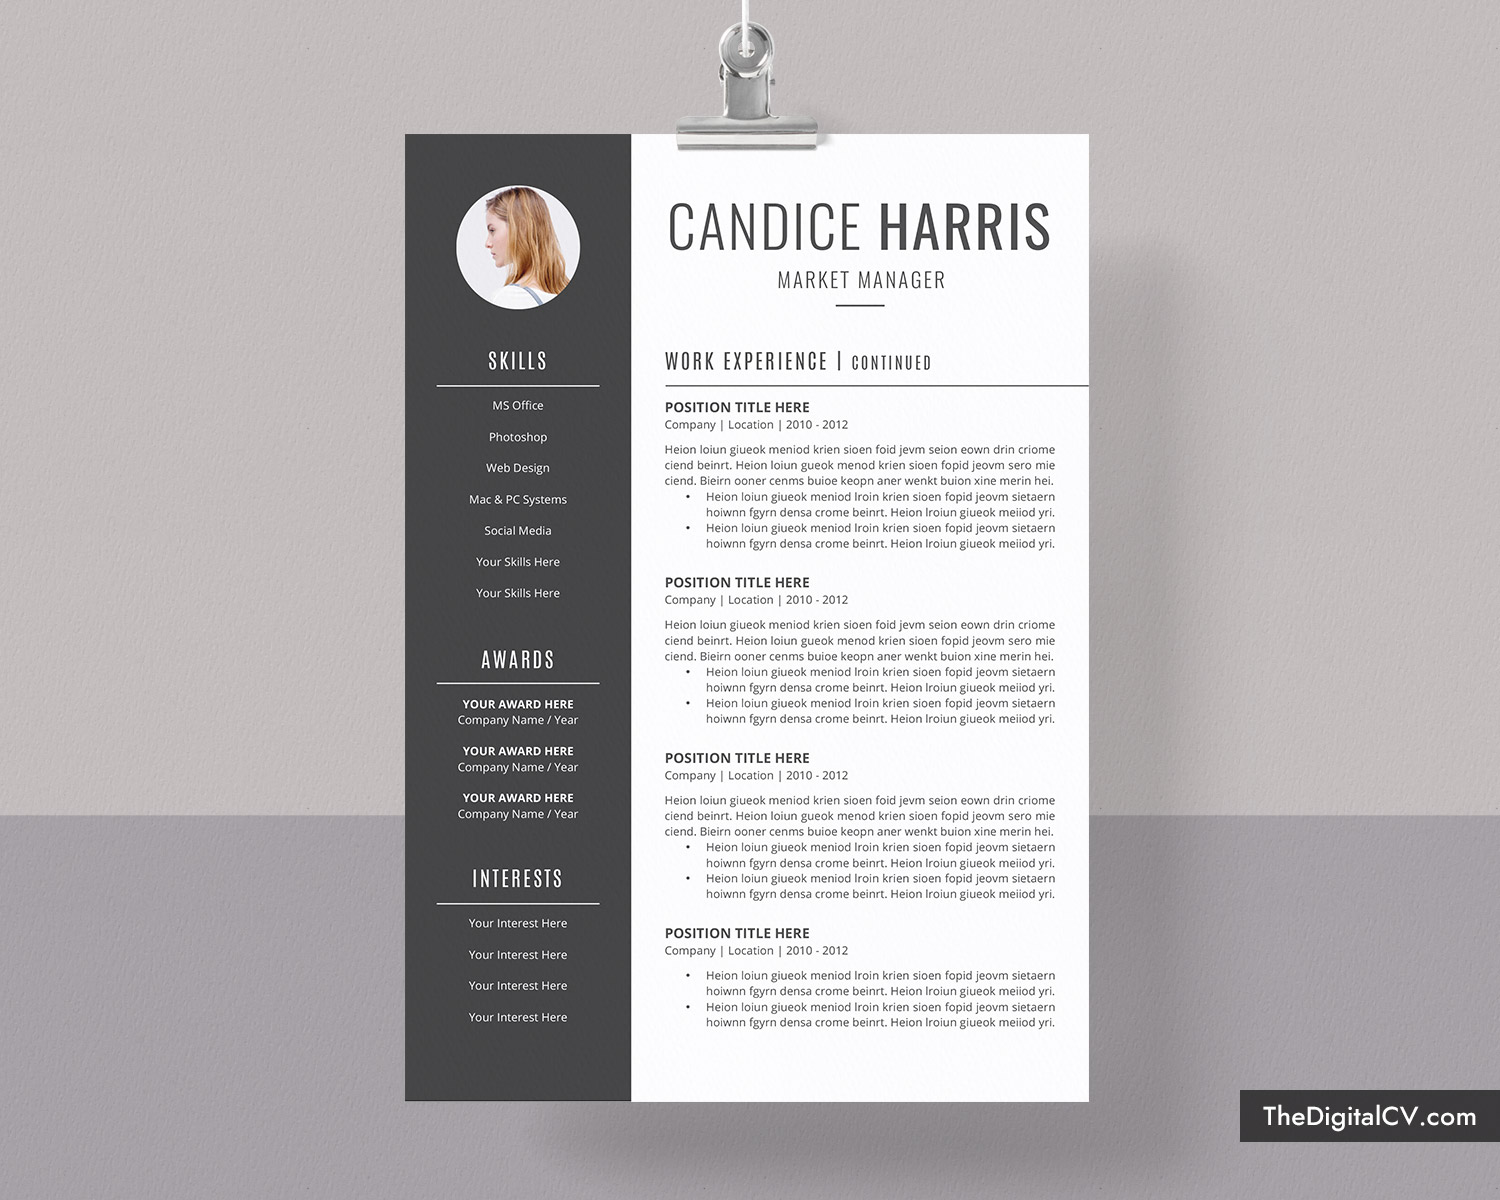 Professional Resume Template For Ms Word 2019 2020 Cv Template Cover Letter Modern Resume Creative Resume 1 3 Page Job Resume Teacher Resume